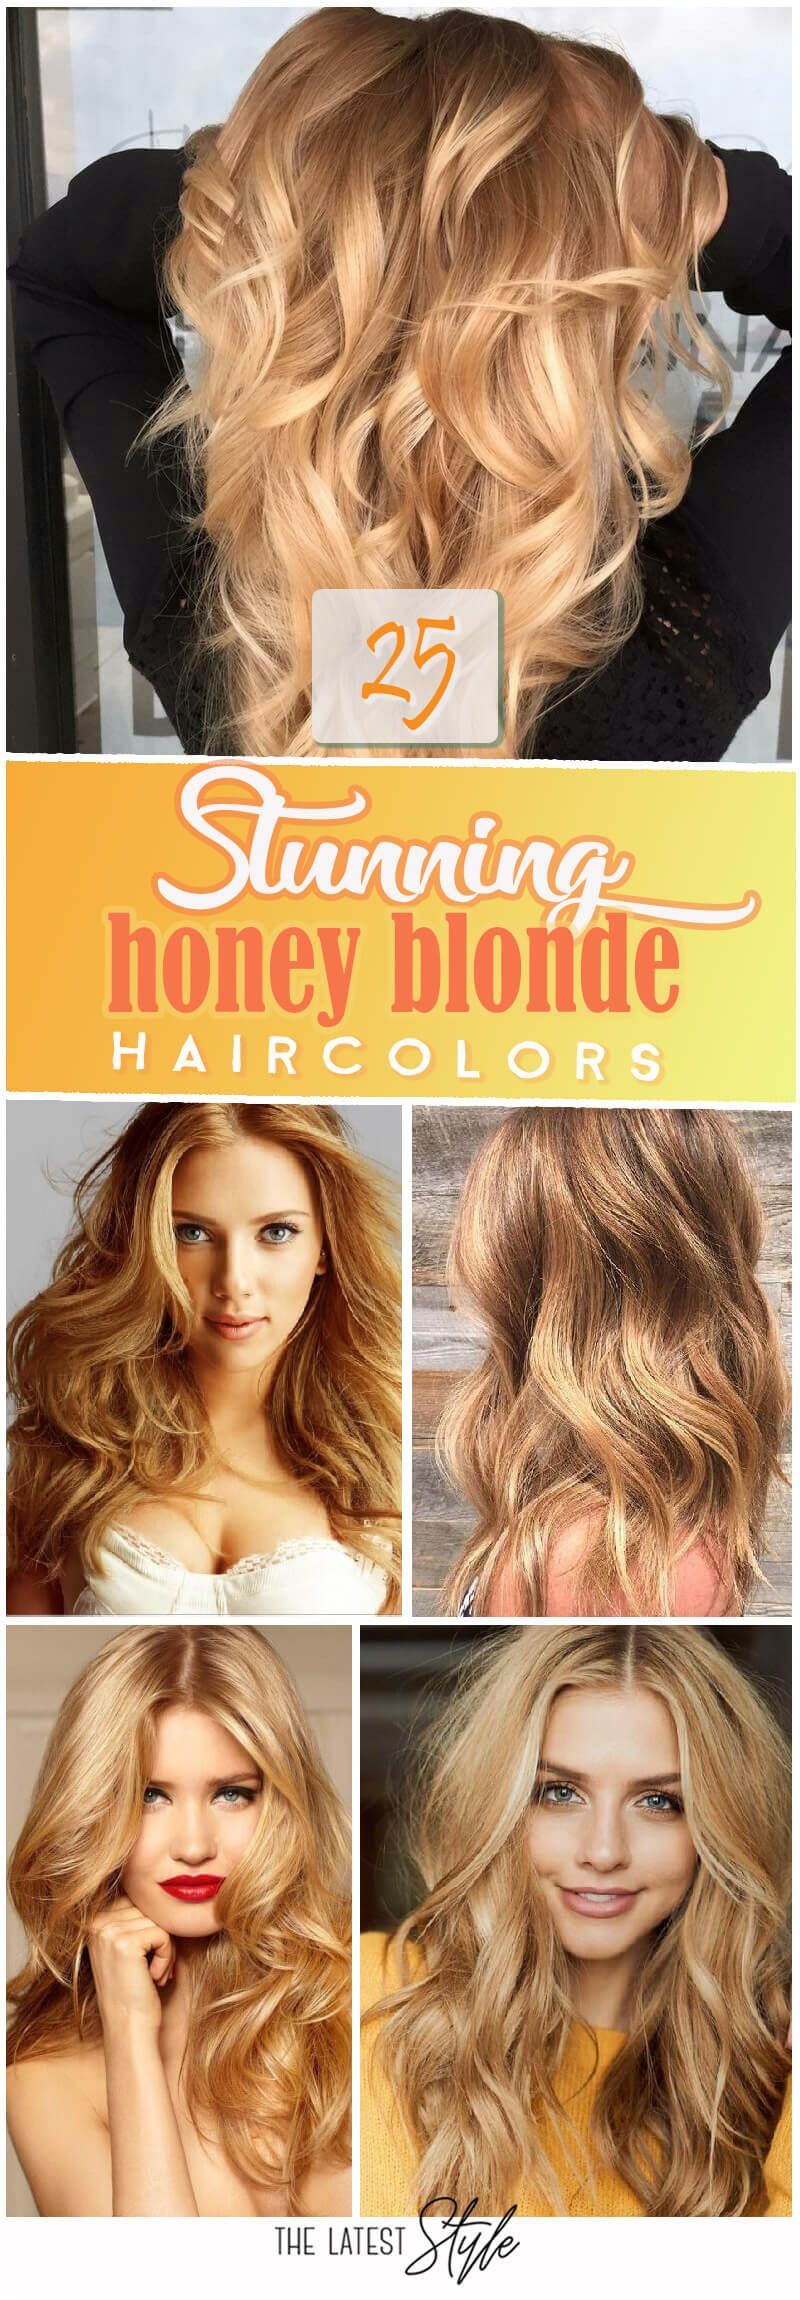 Heidi klum has said that ucgoing blonde is like buying yourself a